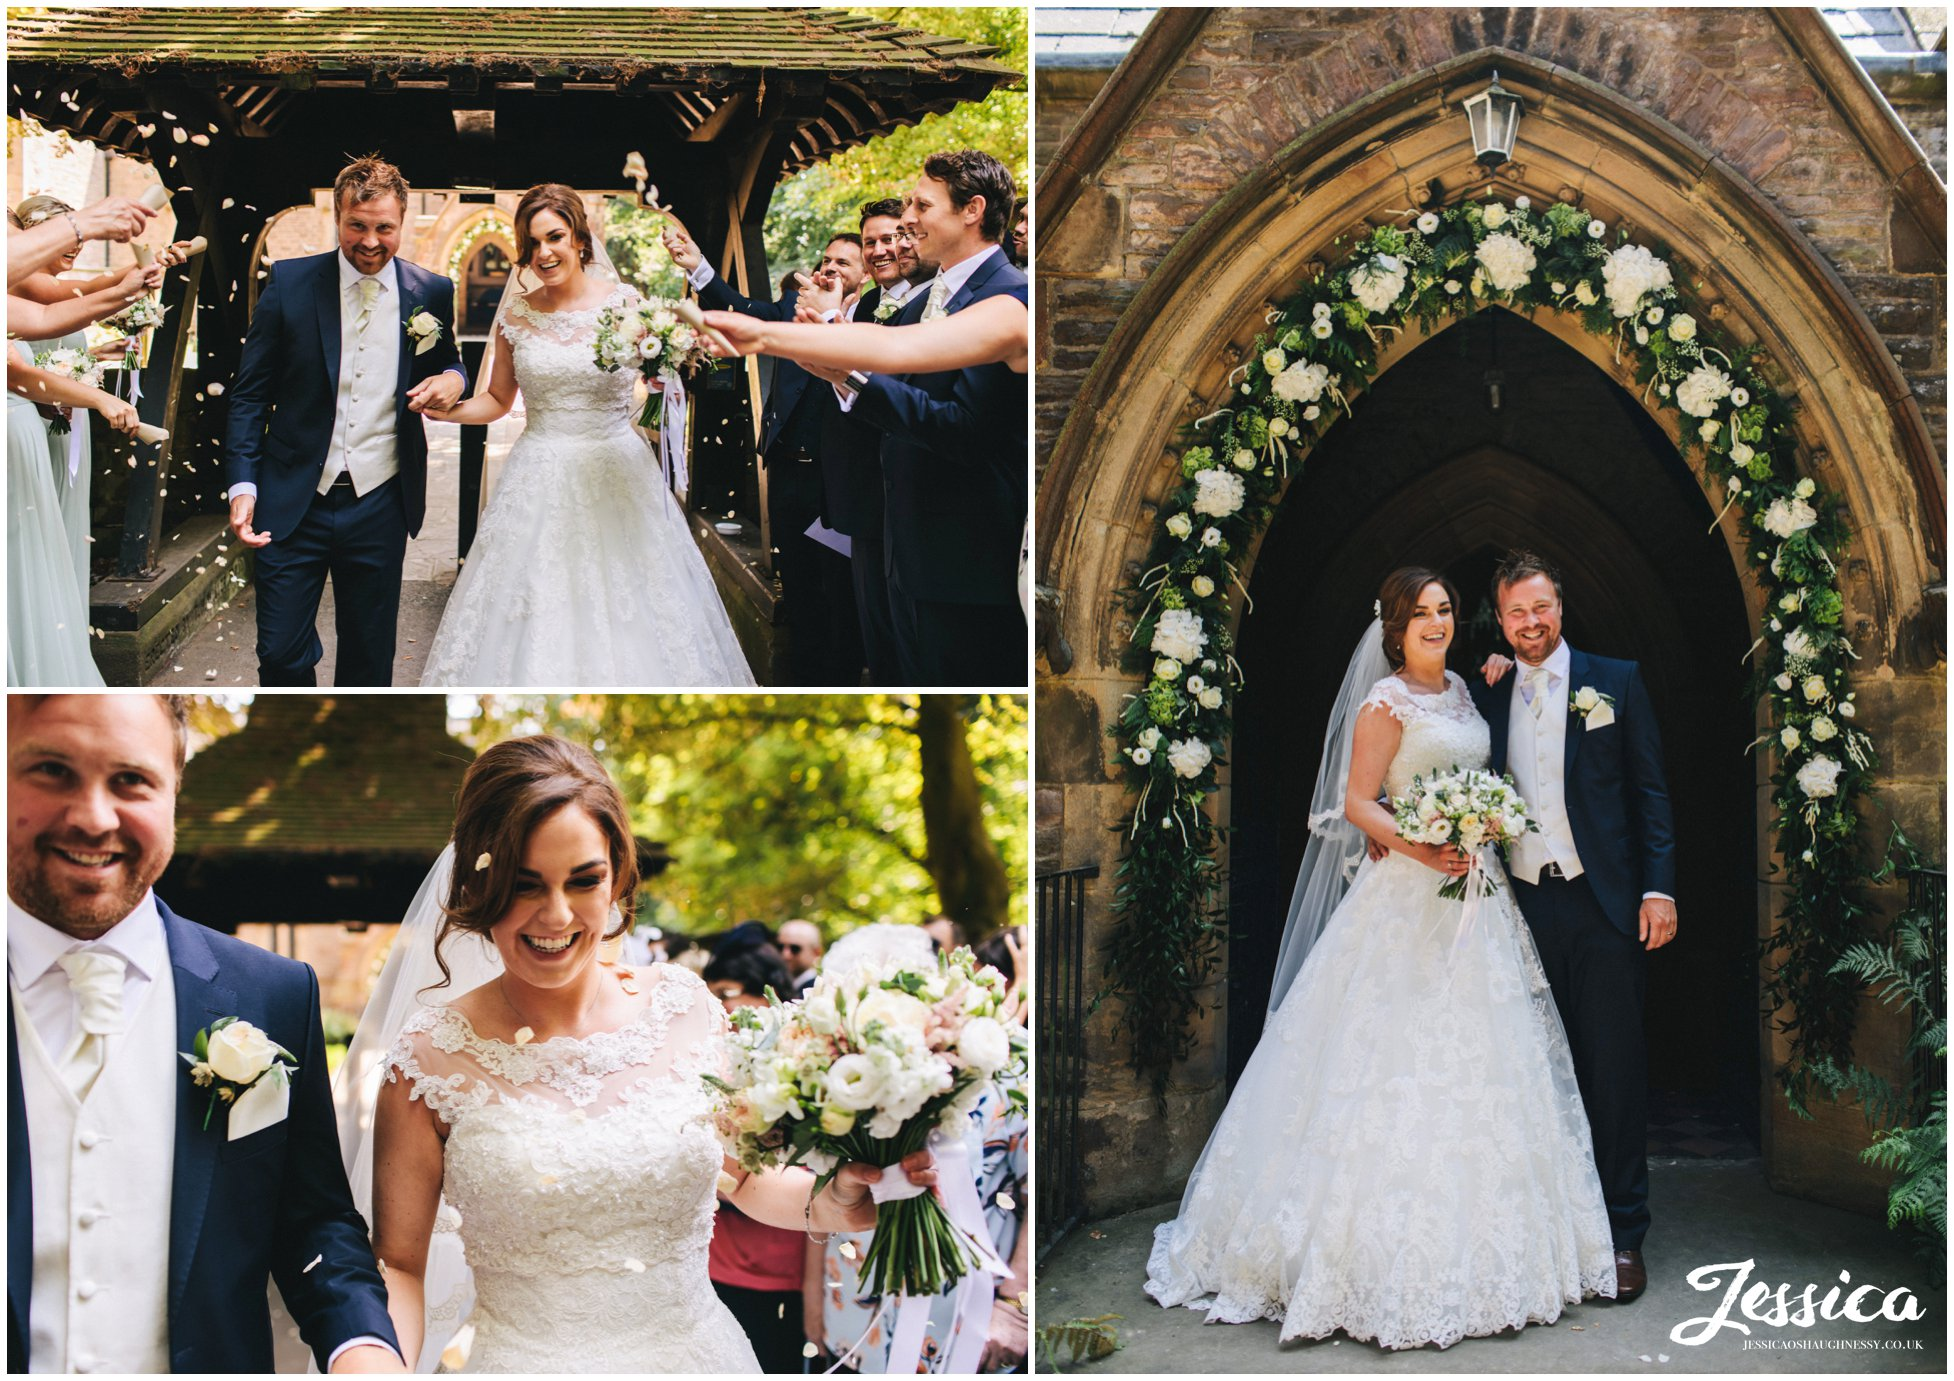 newly wed's stand on the church steps under a floral arch way